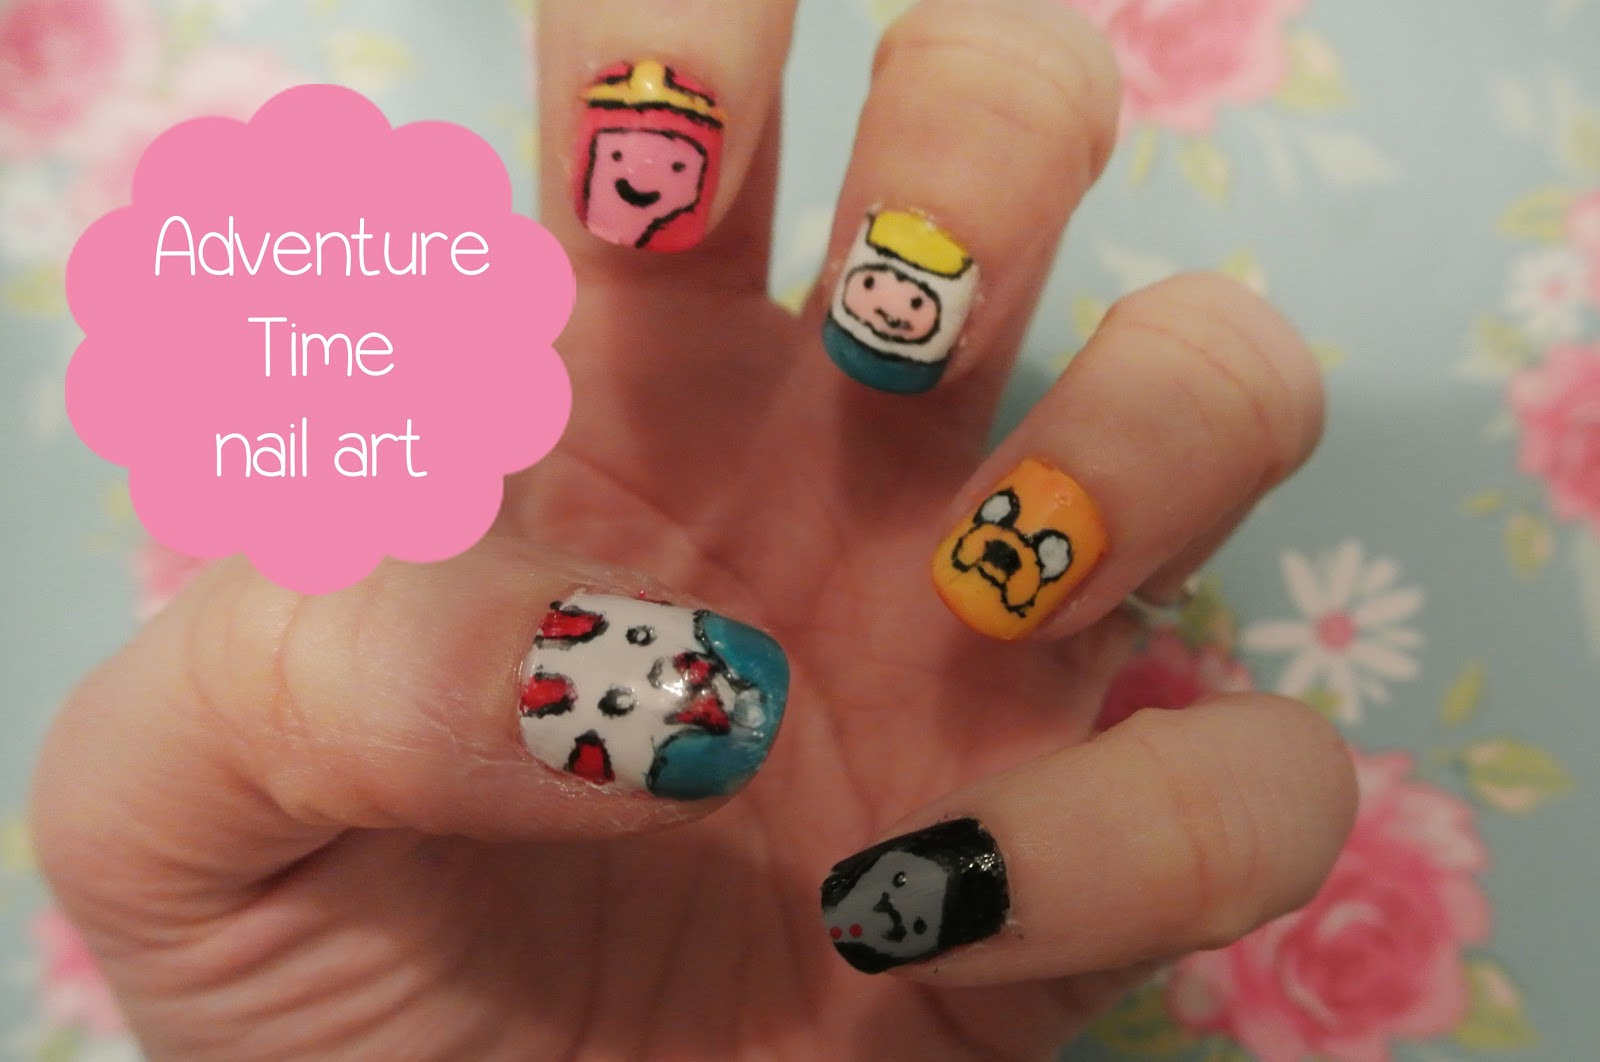 Glittery Teacups: sunday nails #28 - adventure time!